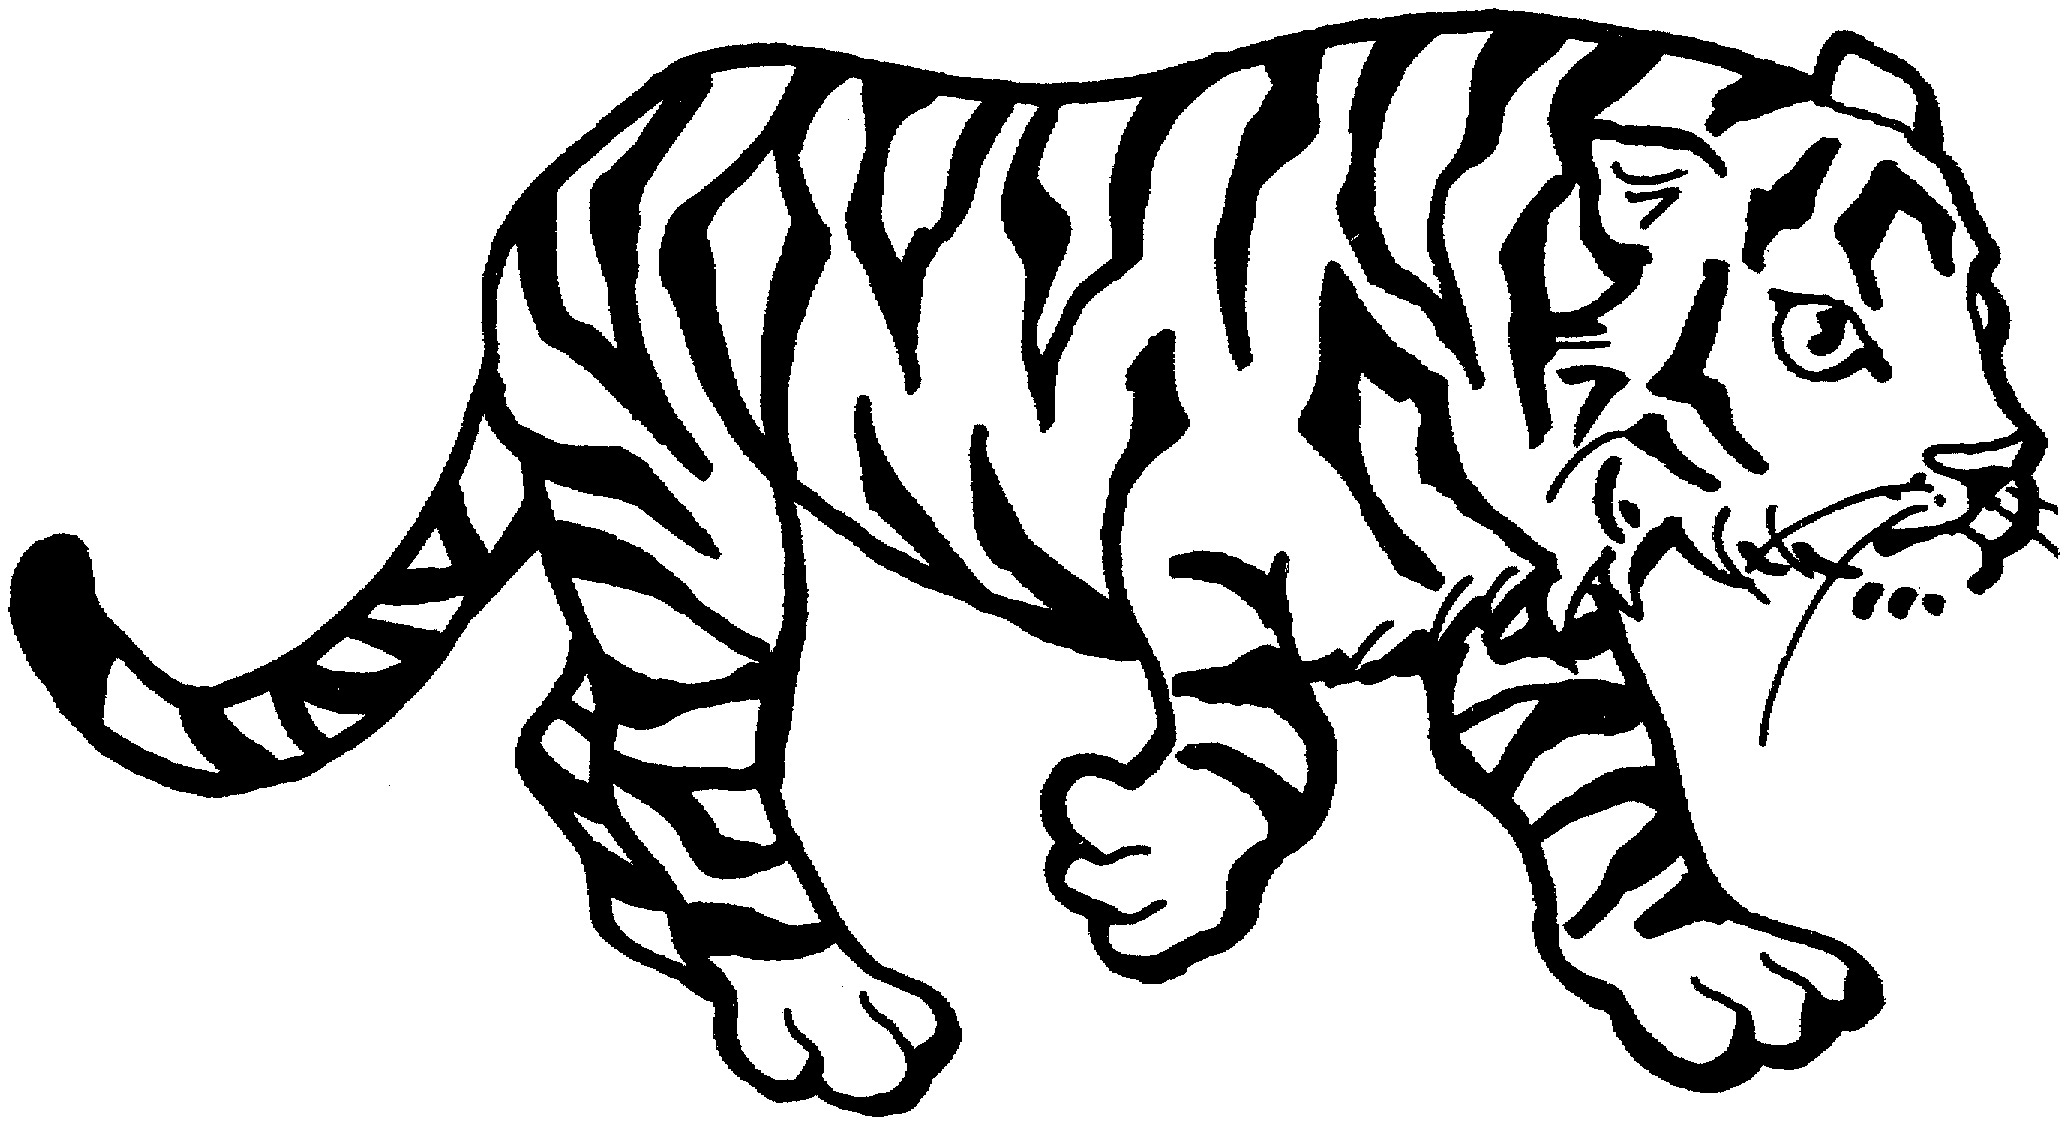 tiger printable coloring pages siberian tiger coloring download siberian tiger coloring printable tiger pages coloring